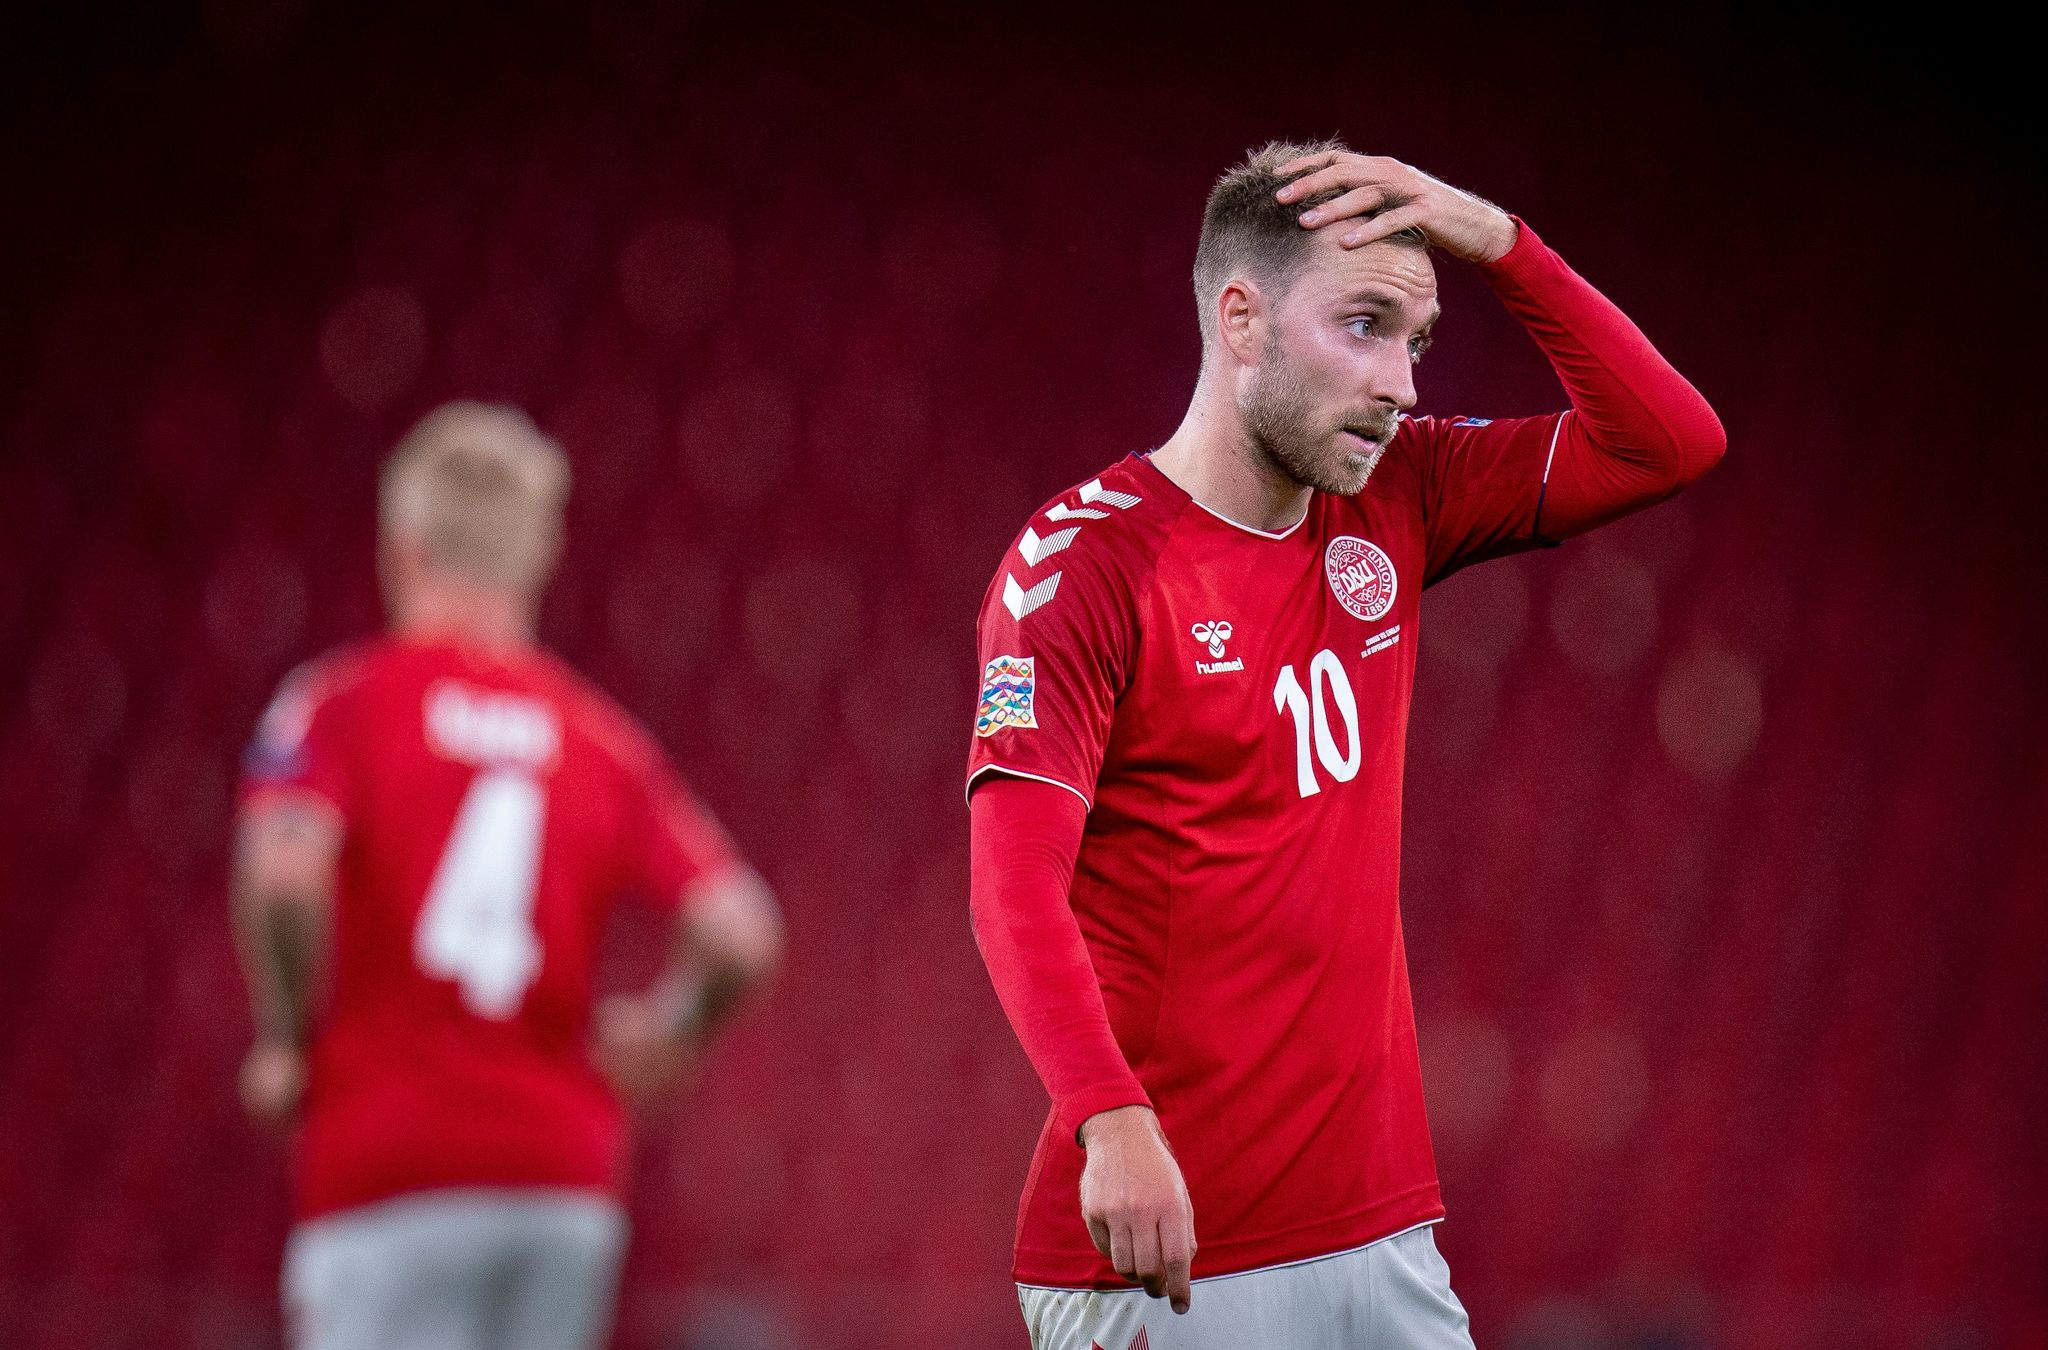 Denmark's midfielder Christian lt;HIT gt;Eriksen lt;/HIT gt; reacts after the UEFA Nations League football match between Denmark and England on September 8, 2020 in Copenhagen, Denmark. (Photo by Liselotte Sabroe / Ritzau Scanpix / AFP) / Denmark OUT